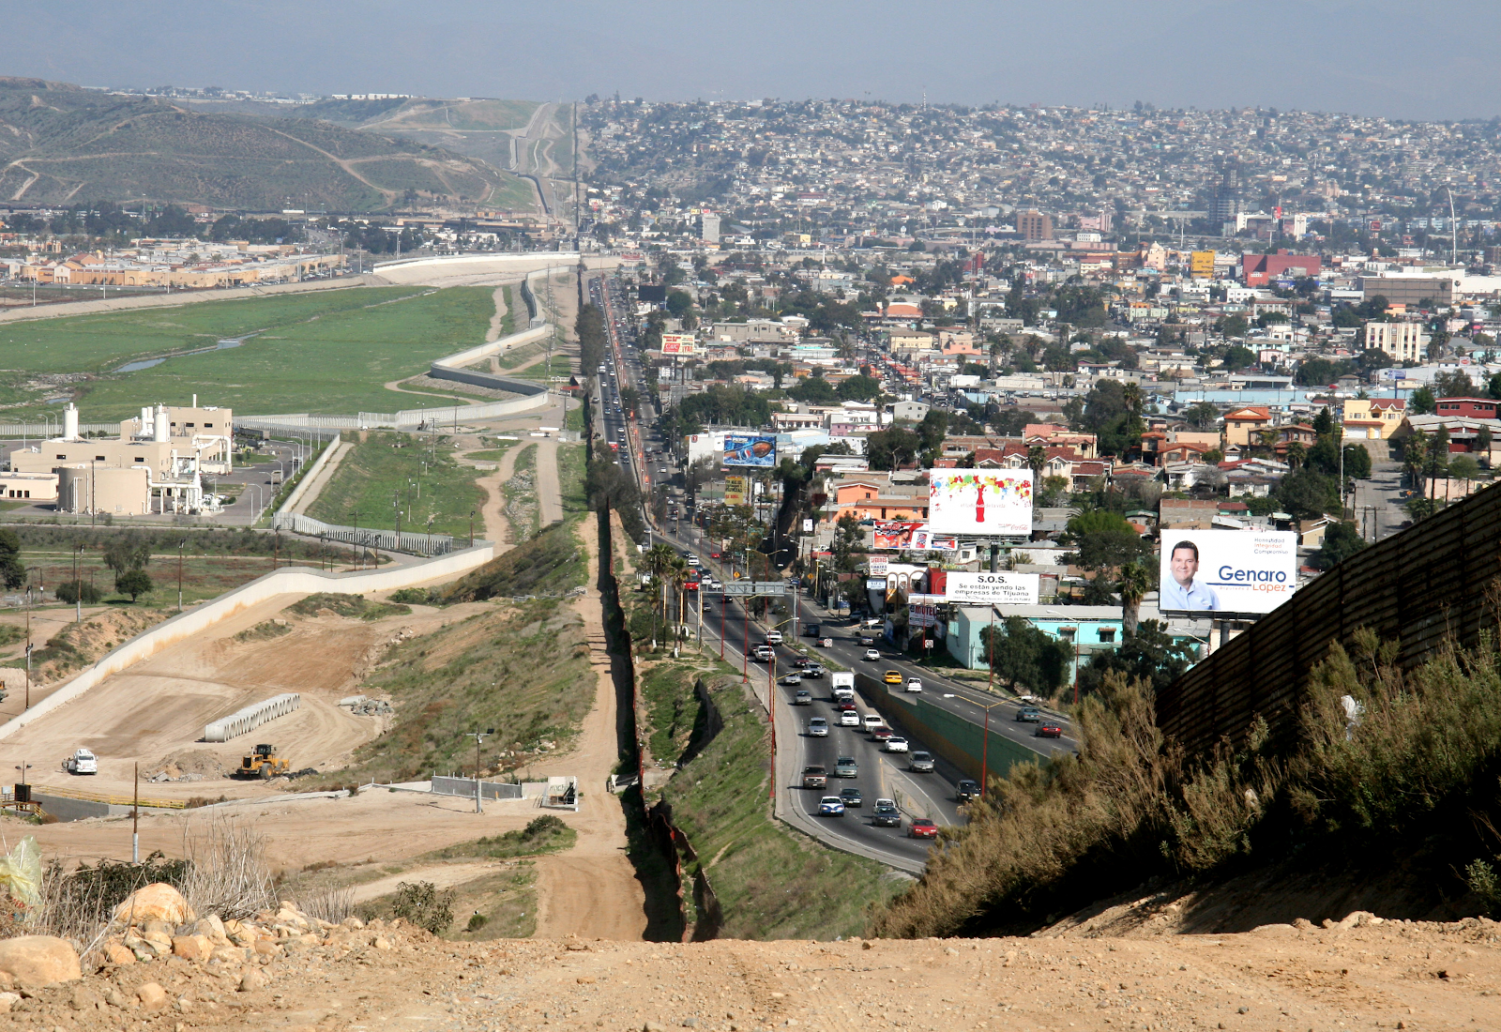 Here is a miles-long stretch of the border between San Diego, California and Tijuana, Mexico. Many southern central Americans attempt to cross this border every year in hopes of a new life in America.